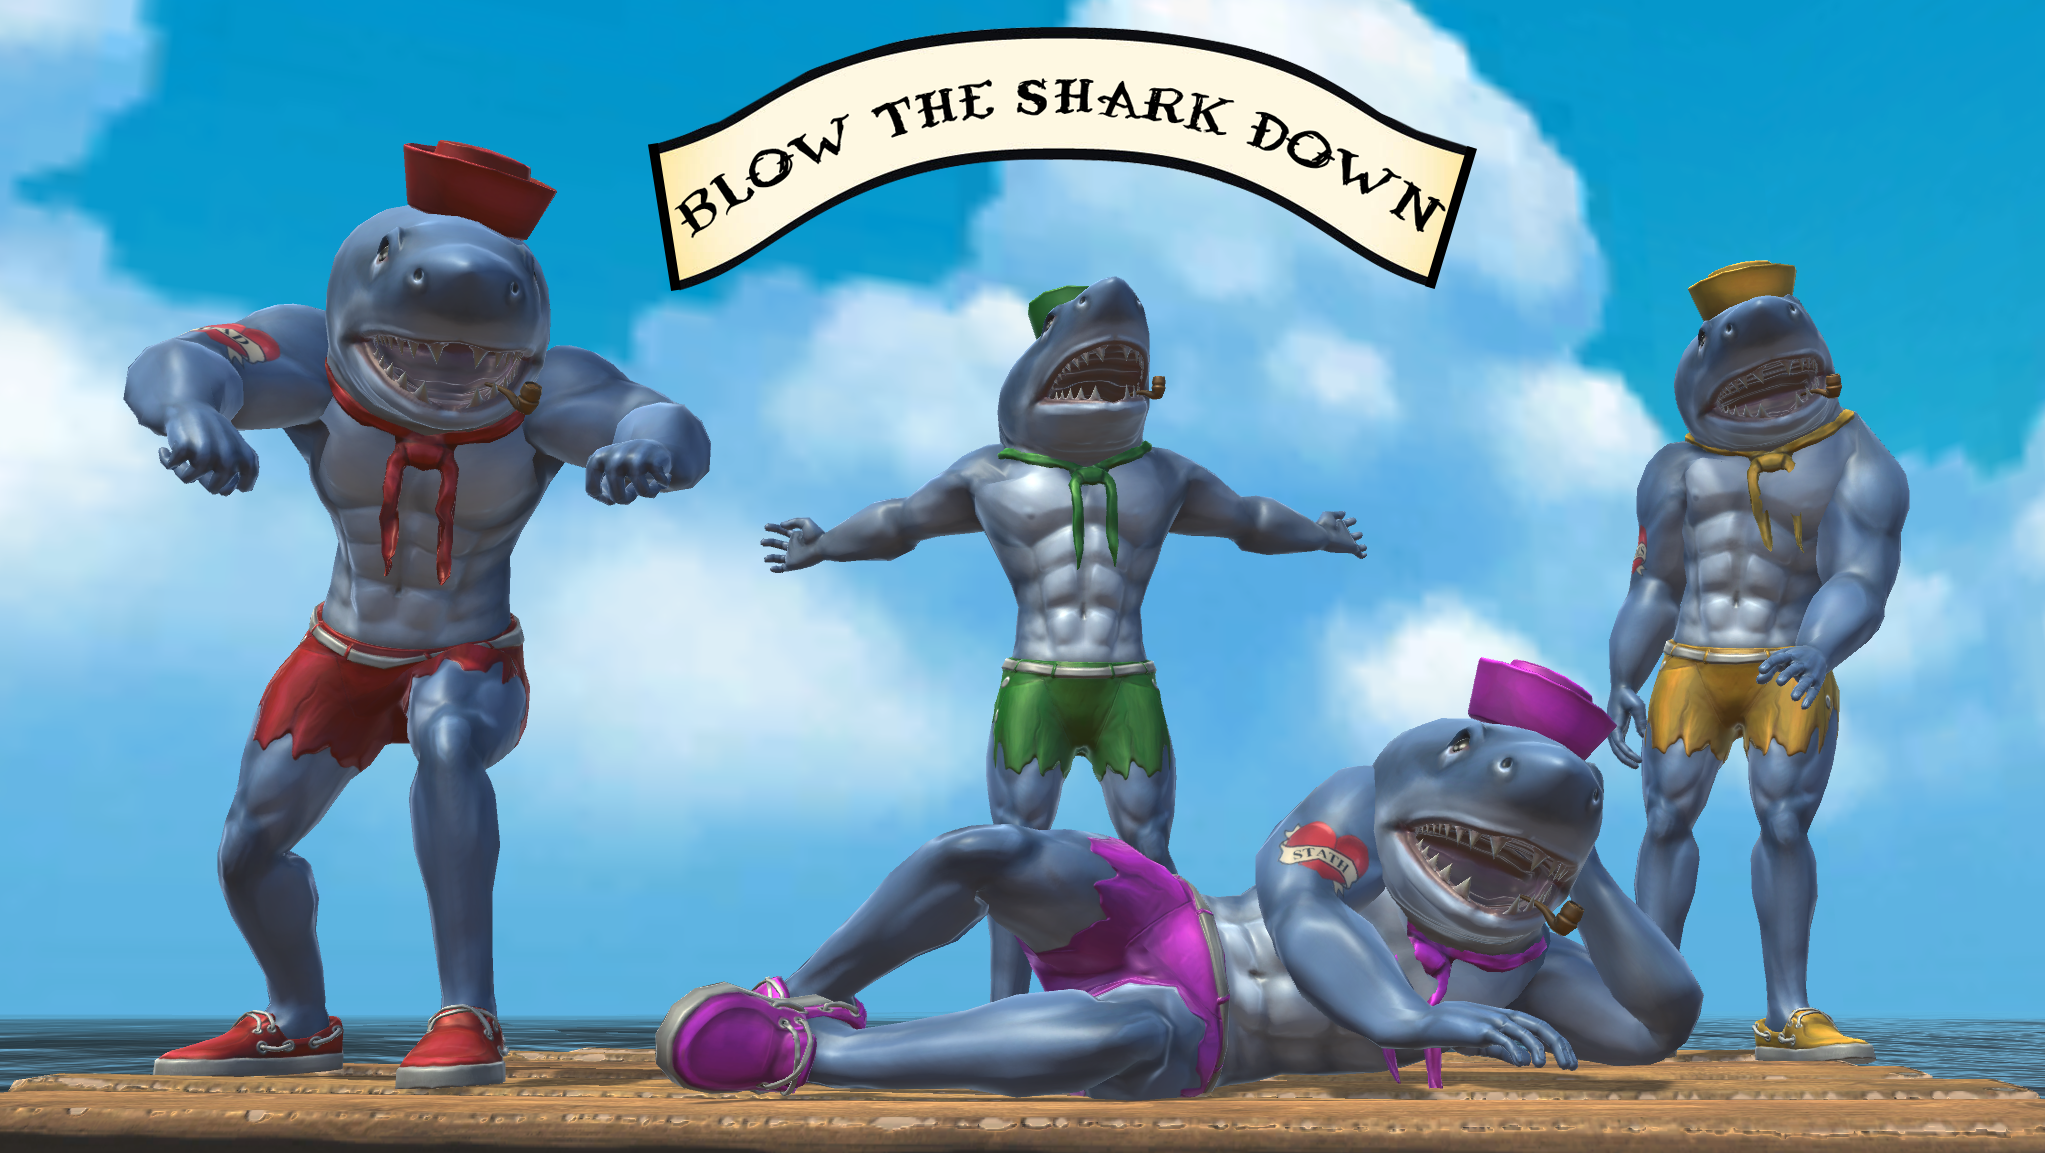 Blow The Shark Down